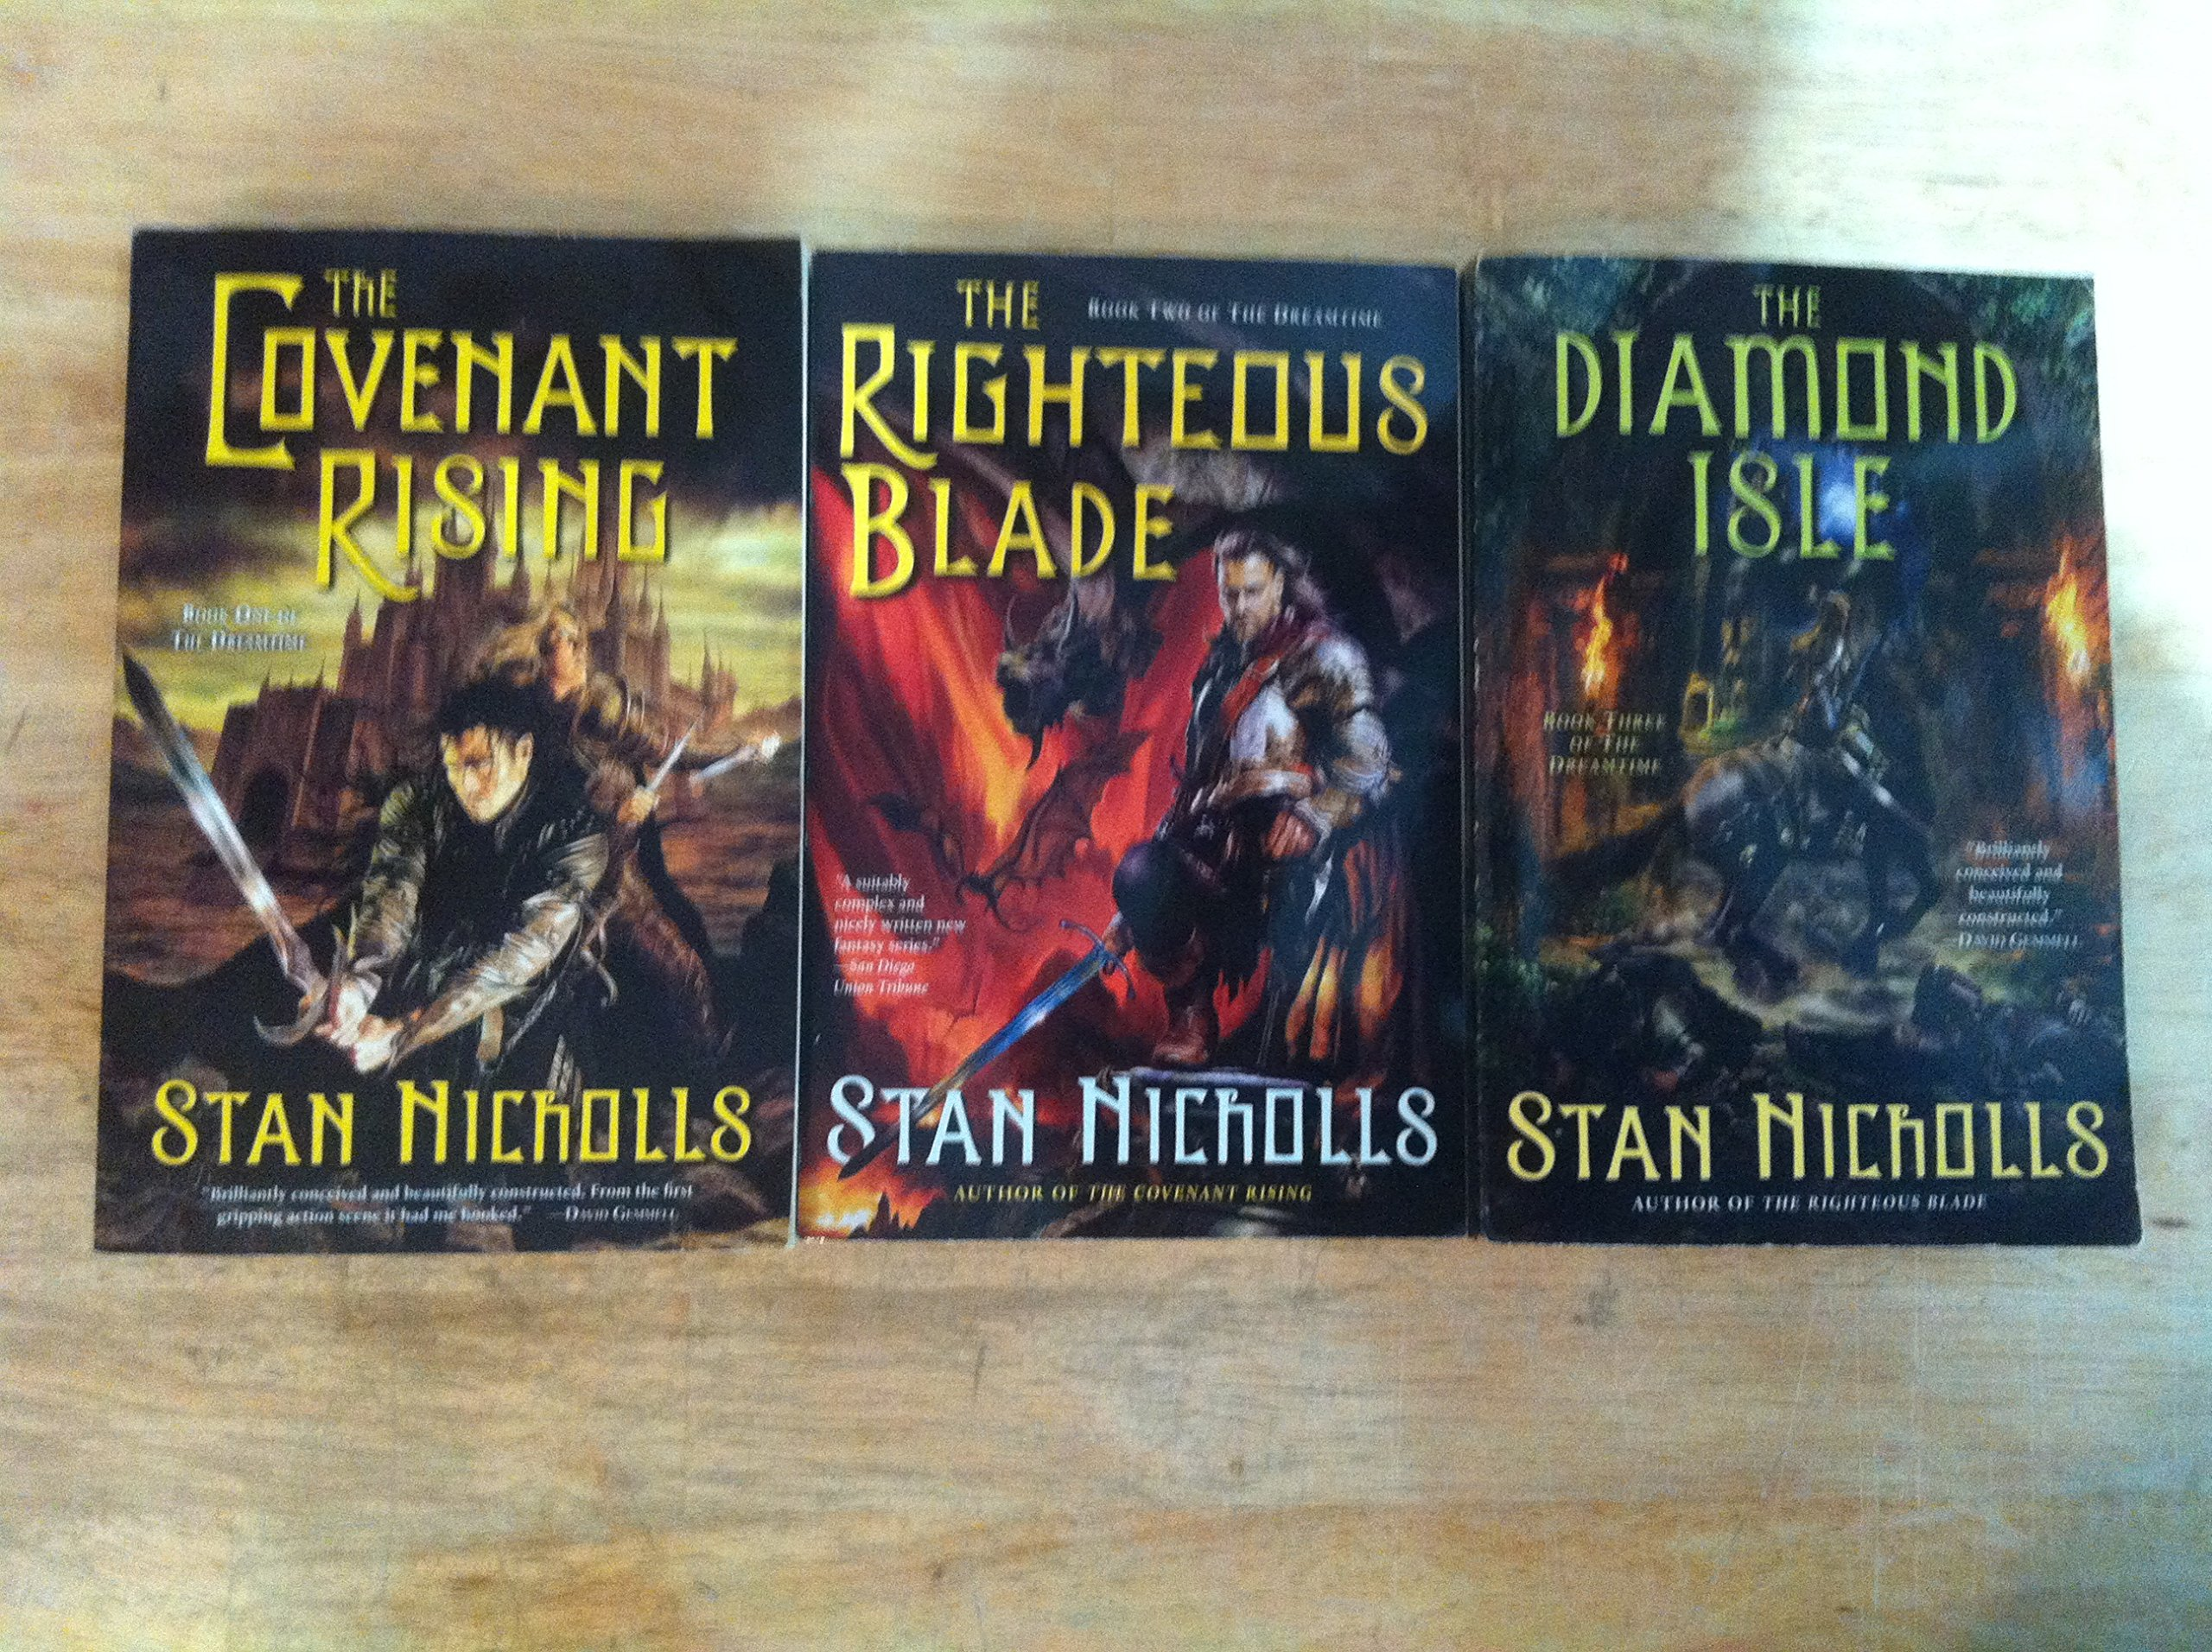 the righteous blade nicholls stan